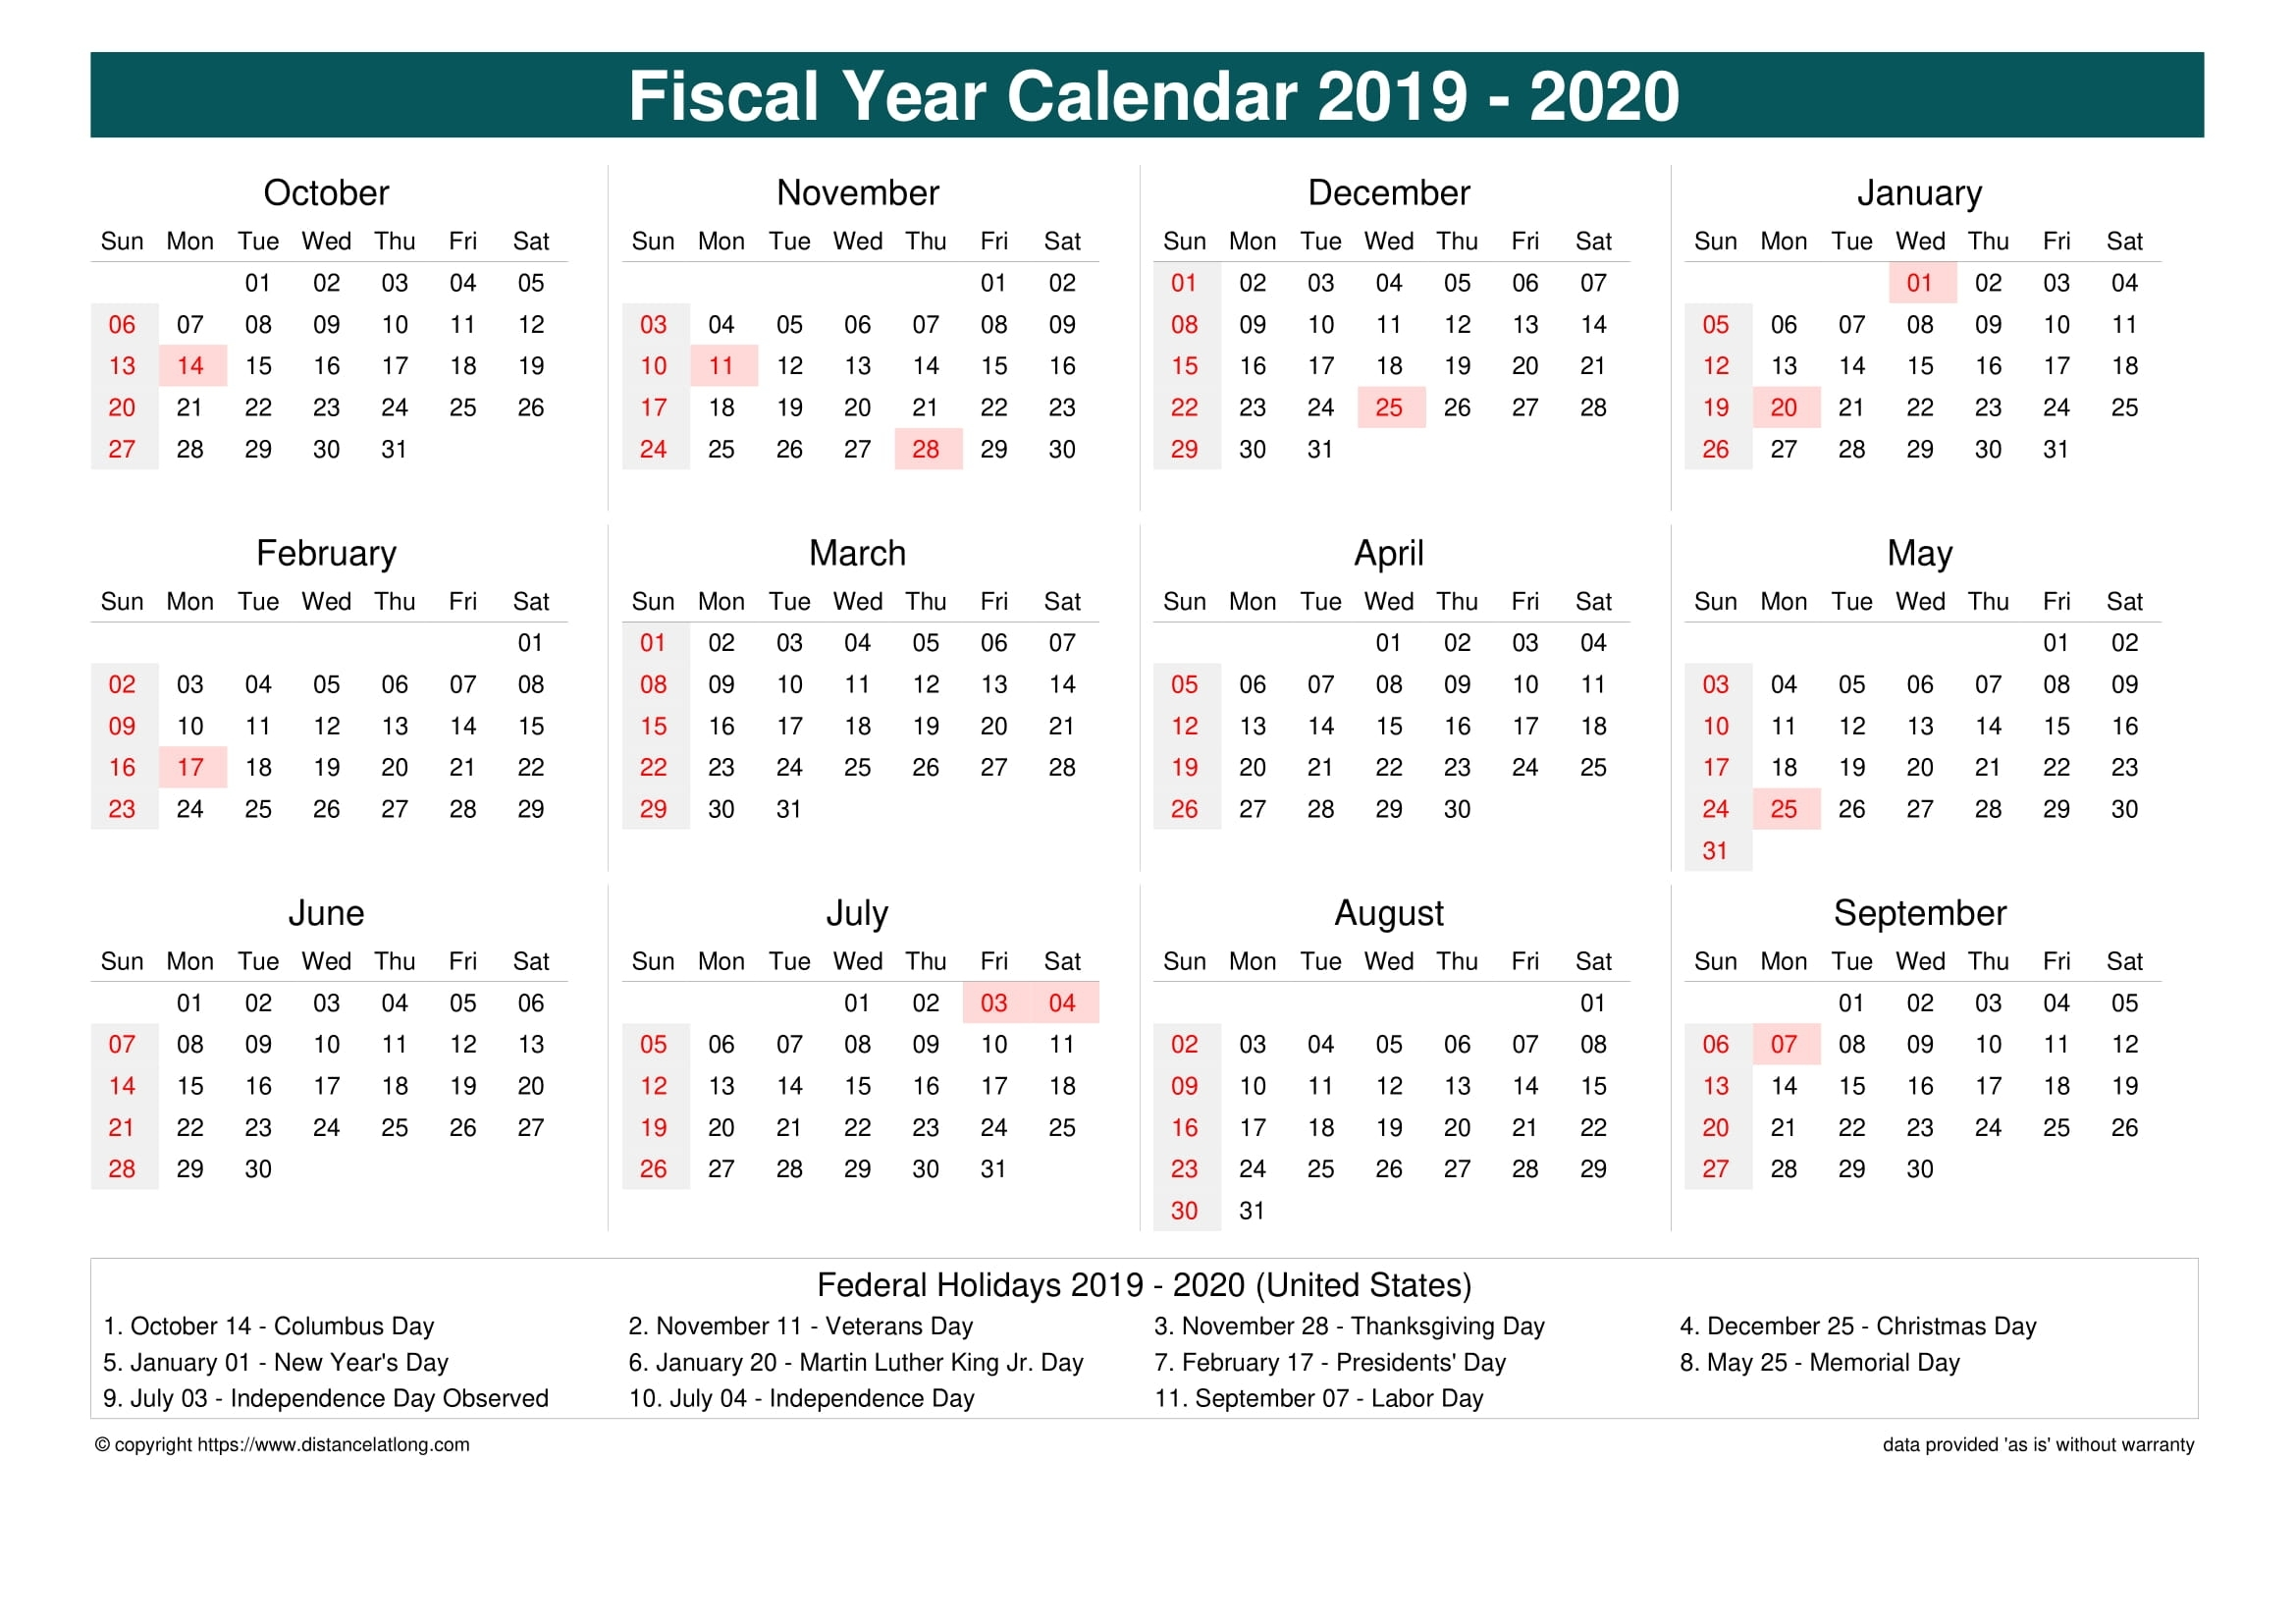 Fiscal Year 2019-2020 Calendar Templates, Free Printable intended for Financial Calendar 2019/2020 Week Number 25